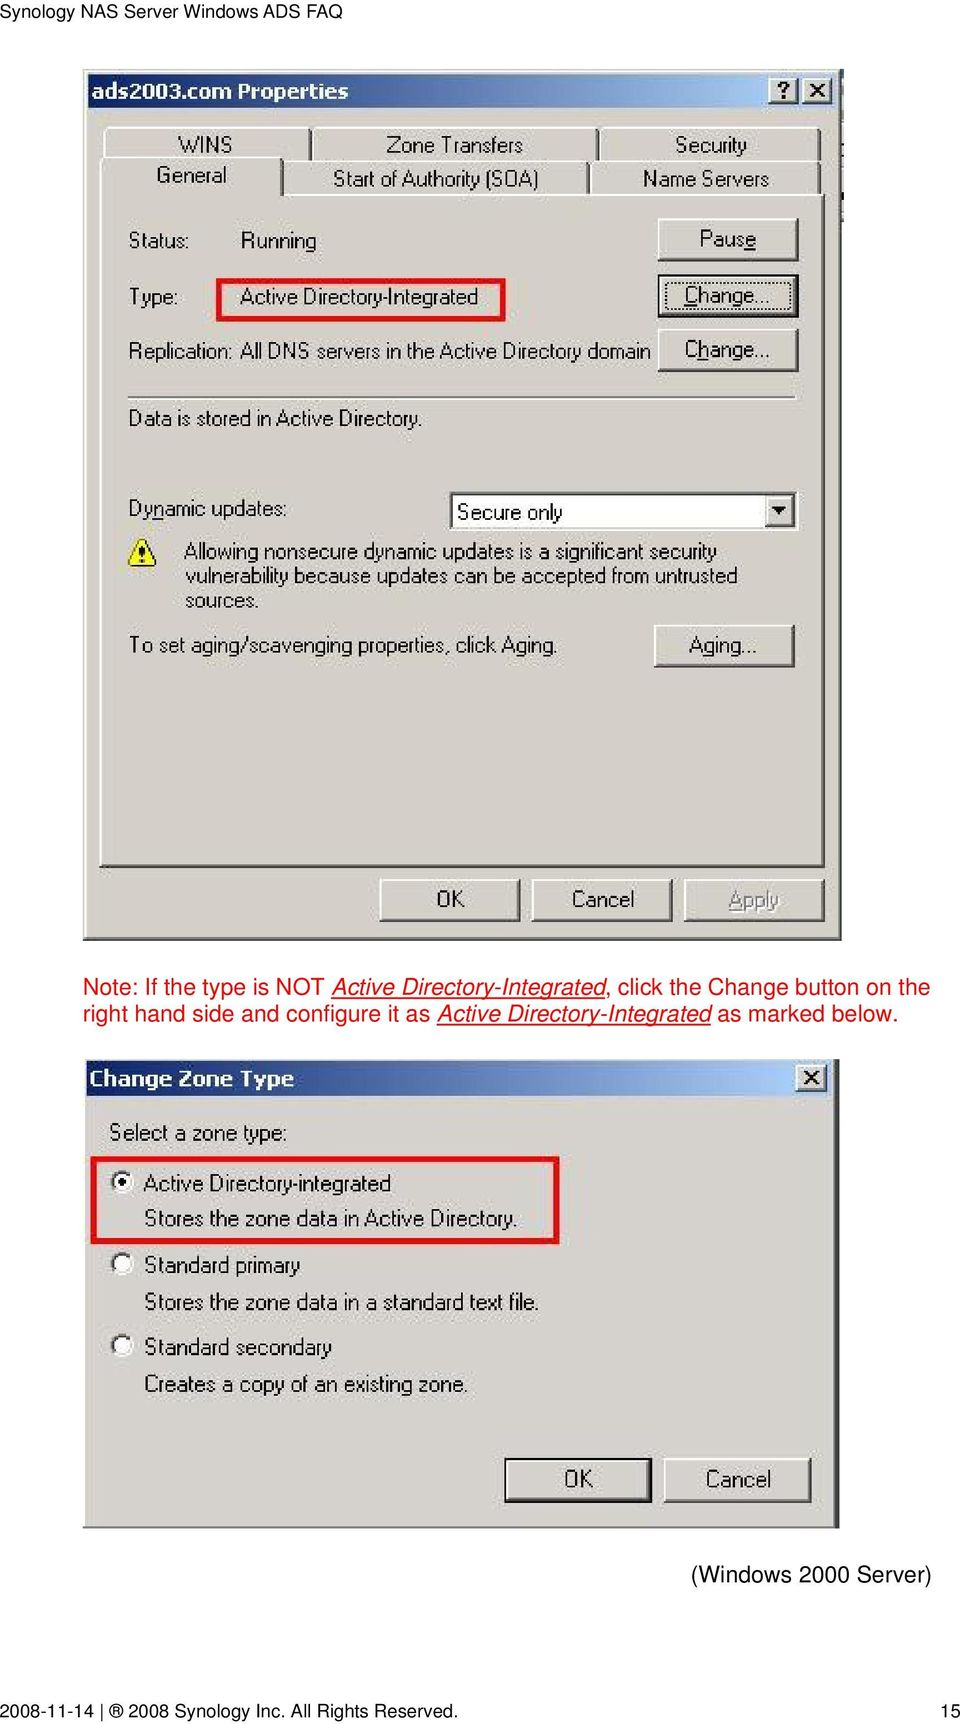 Active Directory-Integrated as marked below.